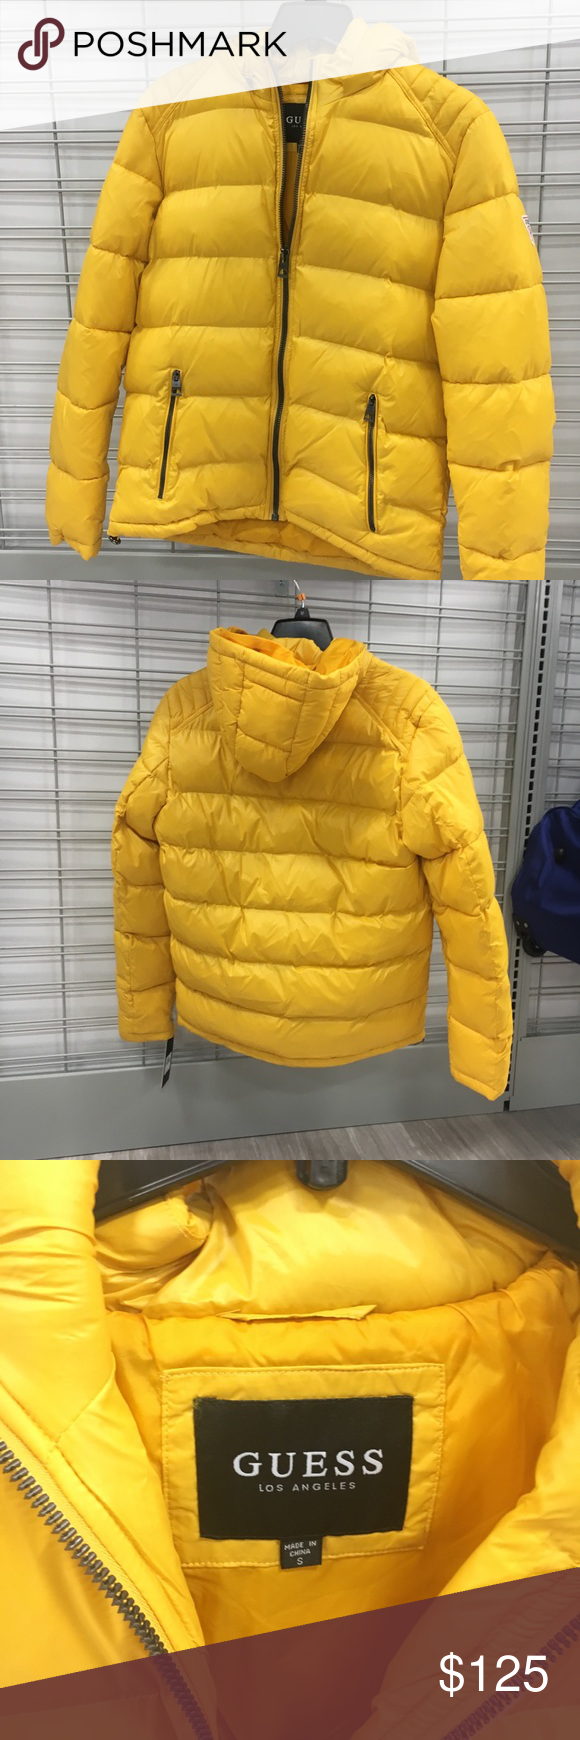 Yellow Guess Men S Hooded Puffer Coat New With Tags For Sale Is What You See In The Pictures And Title All Originally Priced At Puffer Coat Guess Men Puffer [ 1740 x 580 Pixel ]